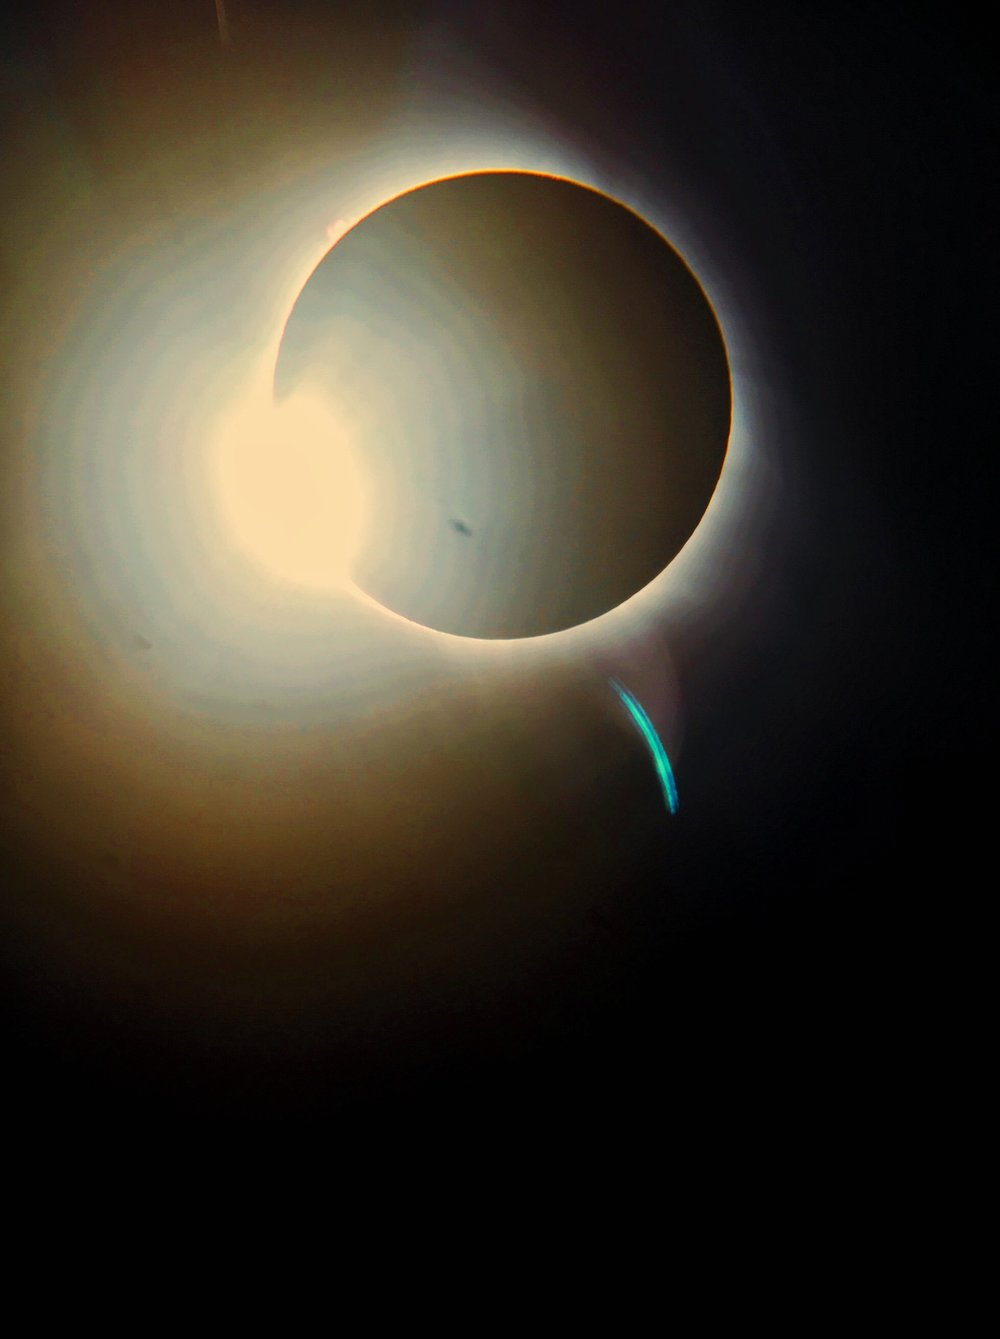 The solar eclipse taken from a huge telescope in our backyard.